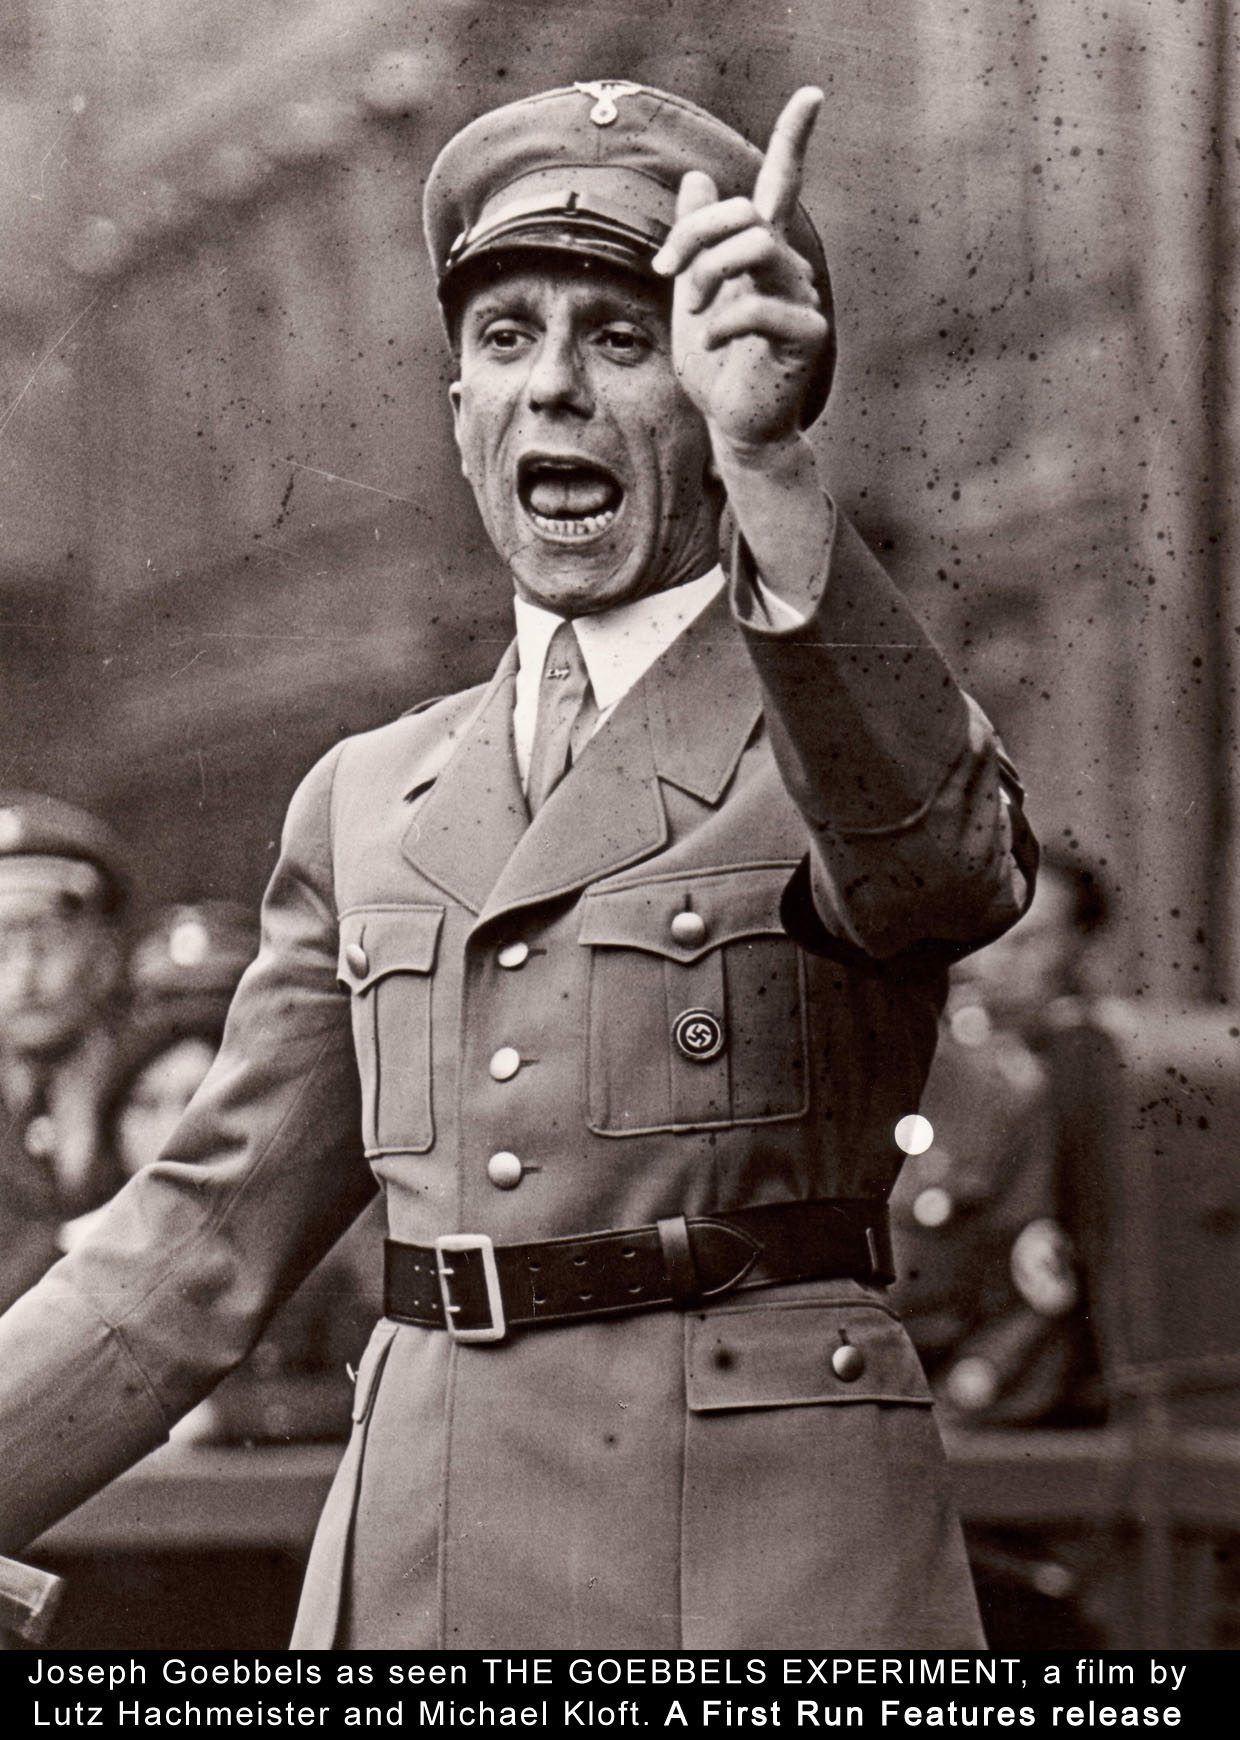 http://notasjudiciosas.files.wordpress.com/2010/01/goebbels12.jpg